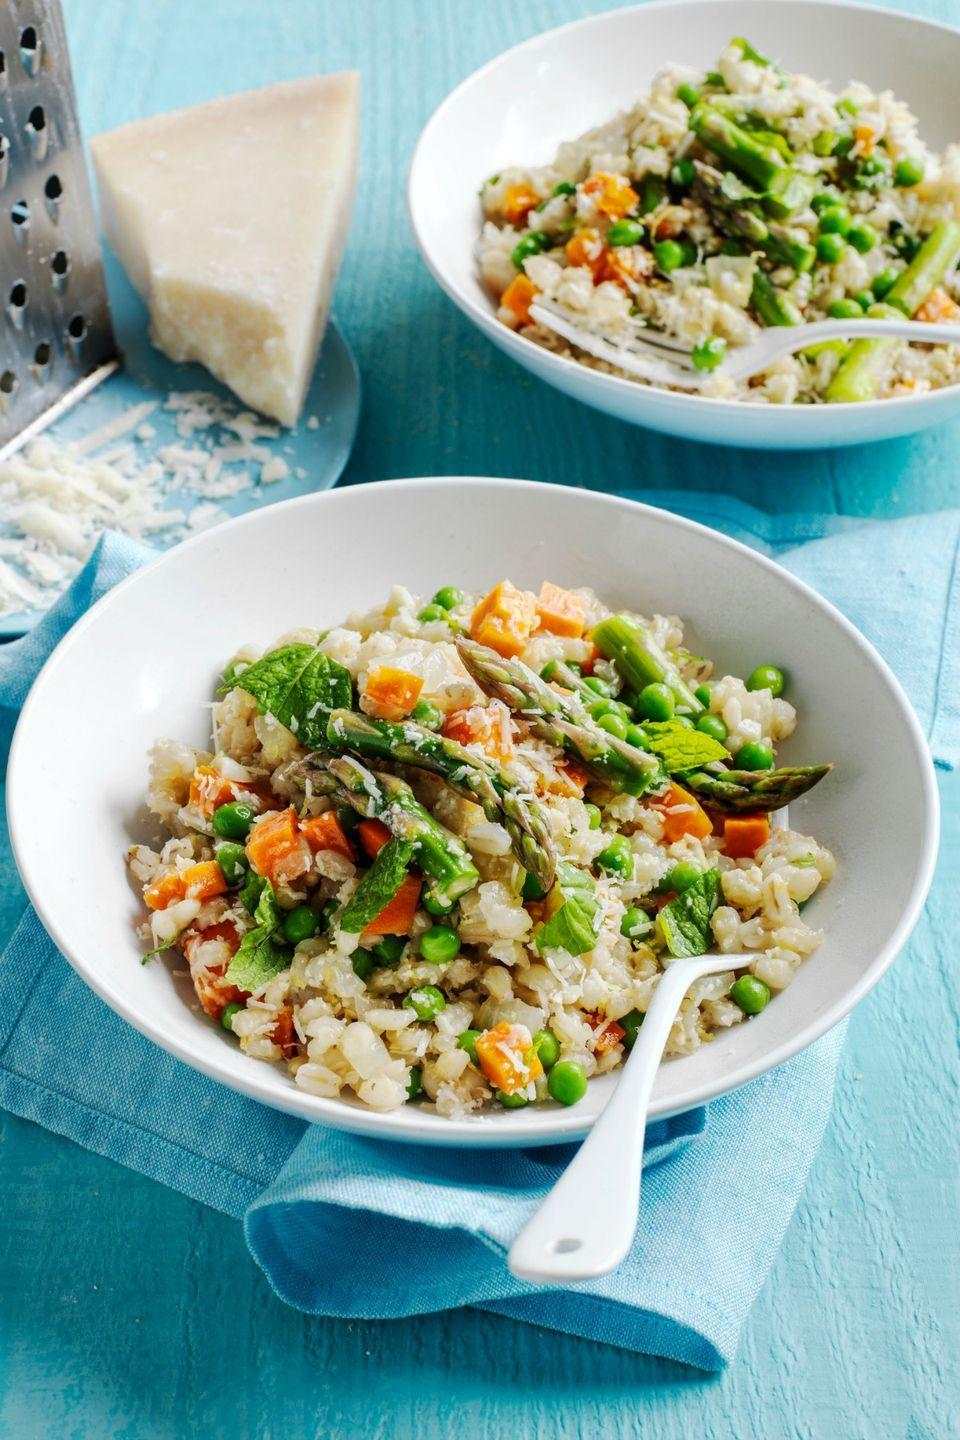 """<p>This heart-healthy recipe uses barley instead of a white grain to make risotto. Then add carrots, asparagus, and peas to make it extra filling. </p><p><a href=""""https://www.womansday.com/food-recipes/food-drinks/recipes/a54435/barley-risotto-recipe/"""" rel=""""nofollow noopener"""" target=""""_blank"""" data-ylk=""""slk:Get the Barley Risotto recipe."""" class=""""link rapid-noclick-resp""""><em>Get the Barley Risotto recipe.</em></a></p>"""